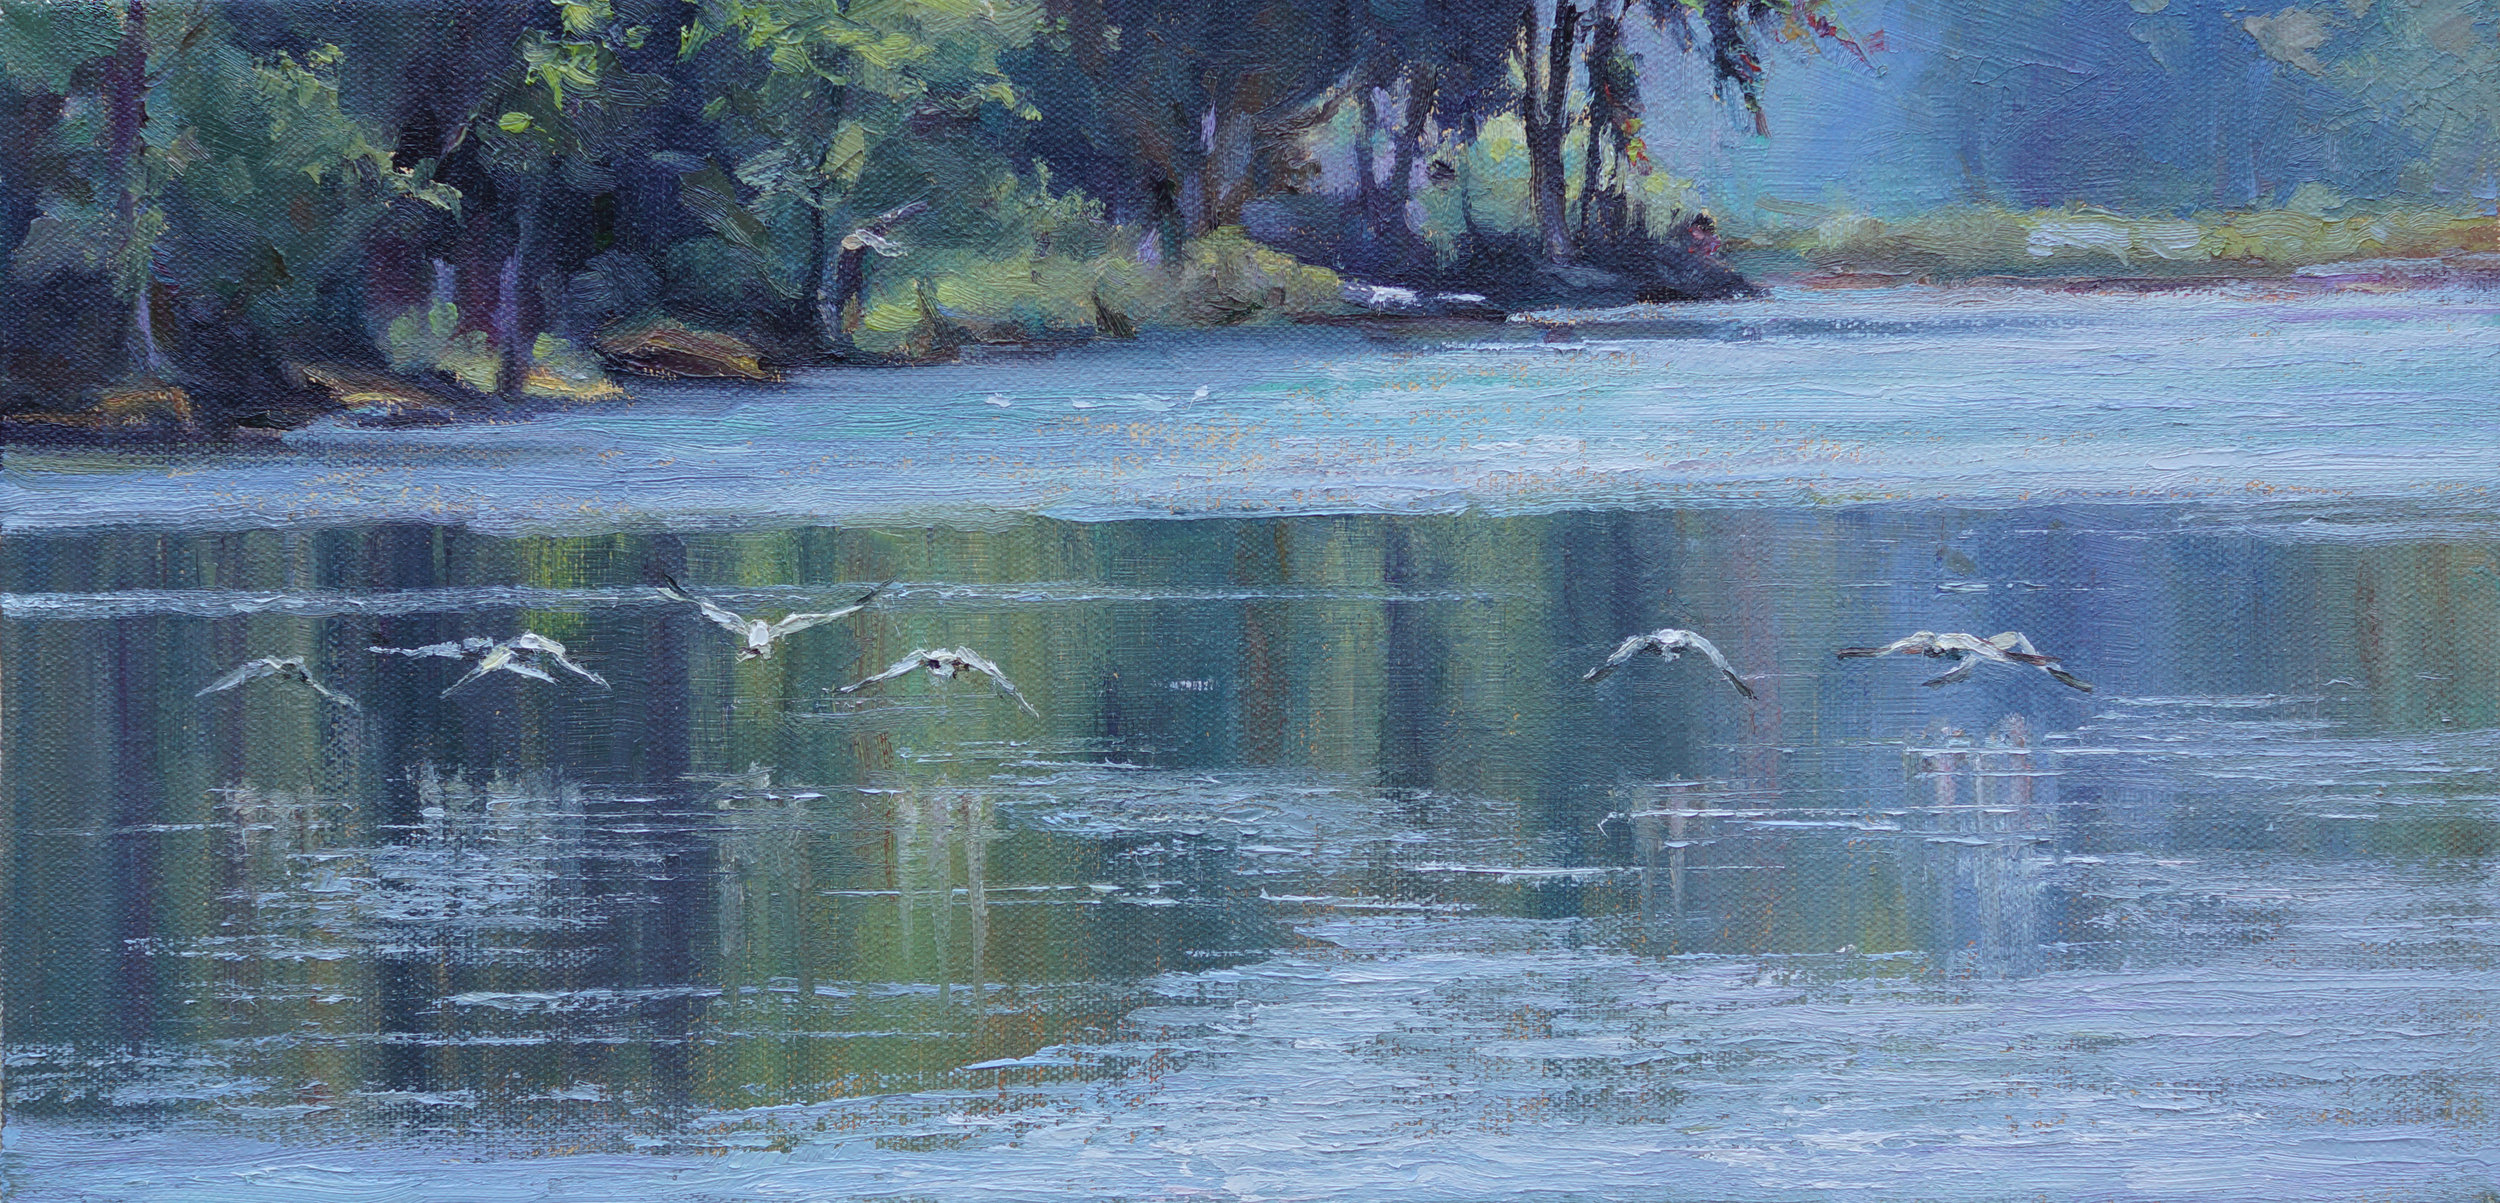 Geese Skim the River